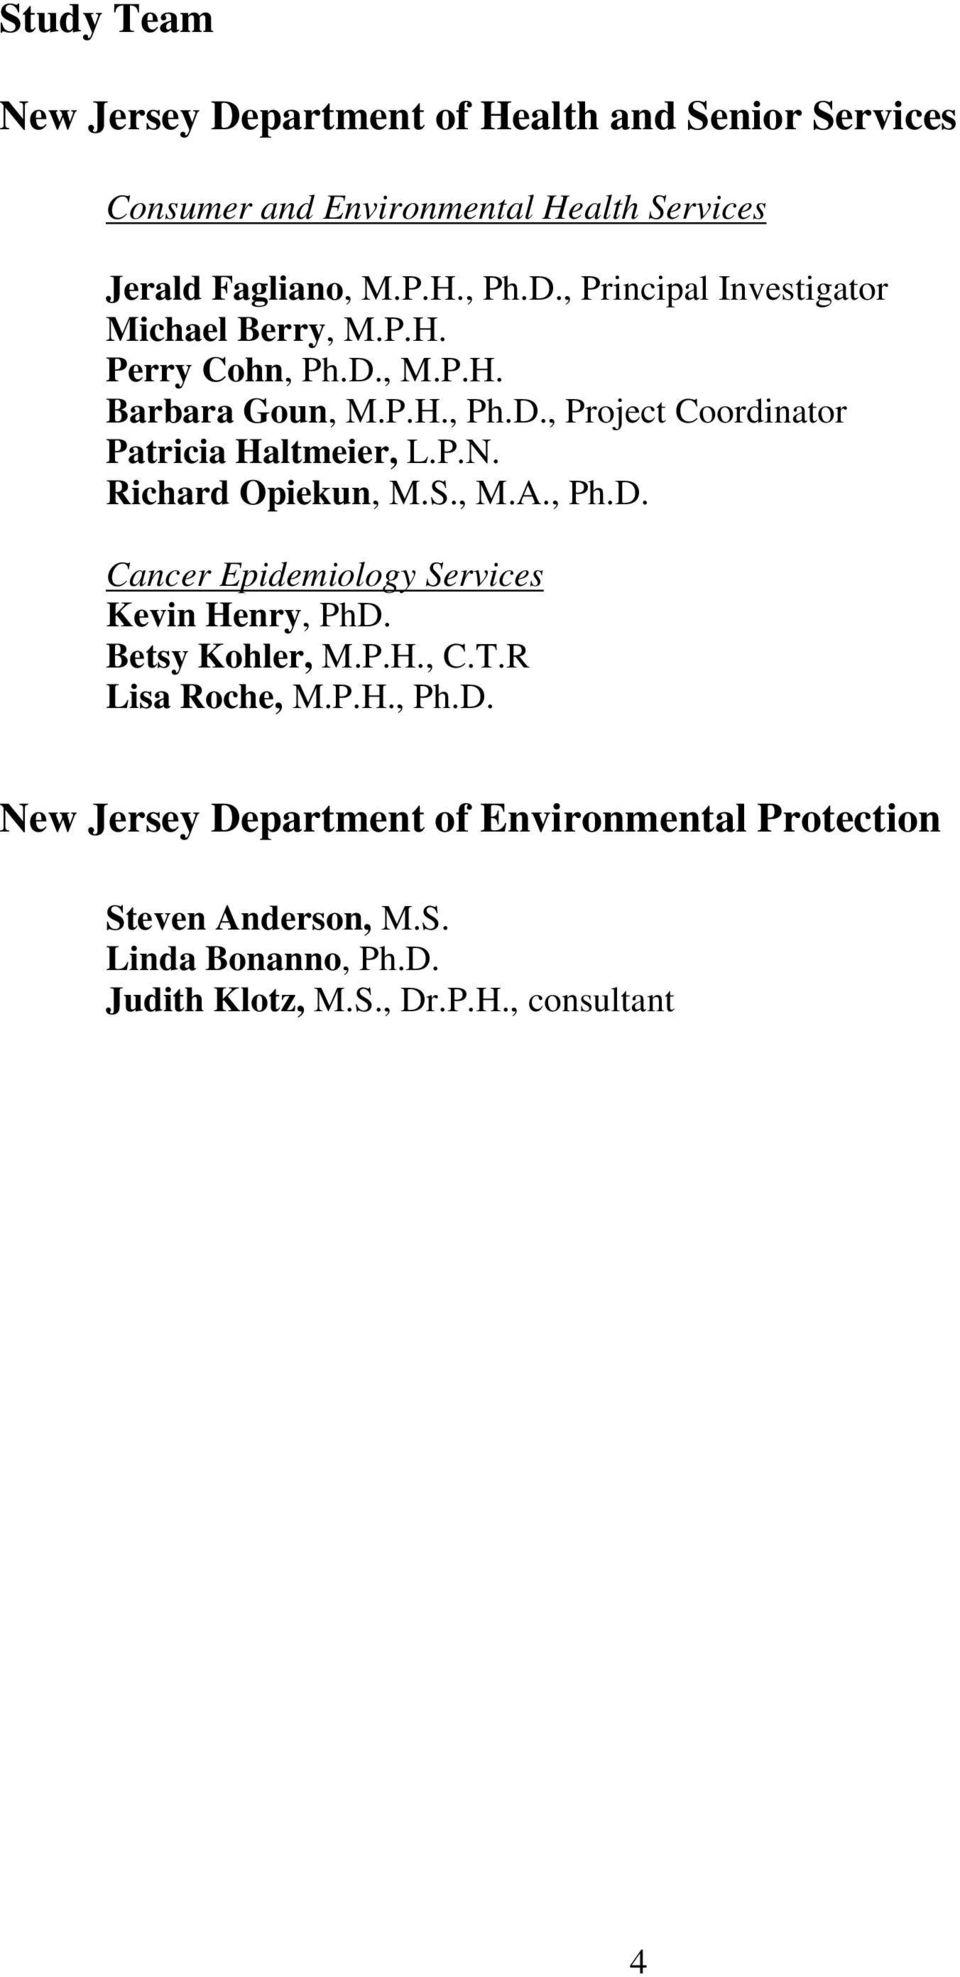 Betsy Kohler, M.P.H., C.T.R Lisa Roche, M.P.H., Ph.D. New Jersey Department of Environmental Protection Steven Anderson, M.S. Linda Bonanno, Ph.